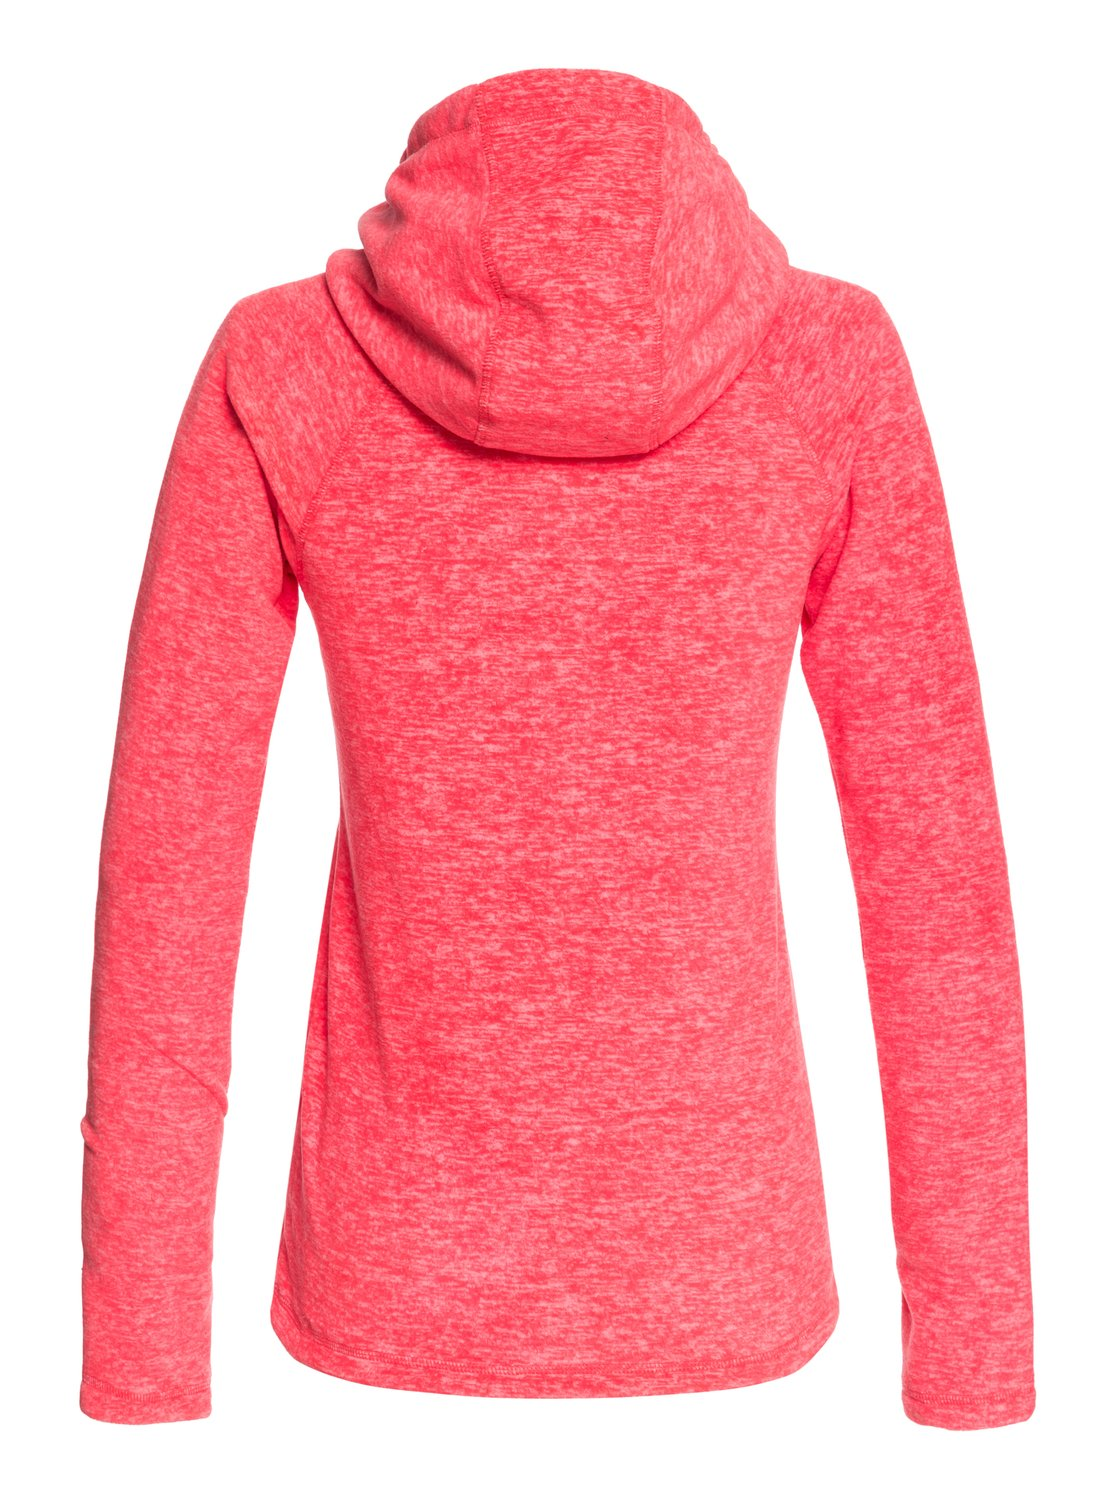 3613373792129 Capuche À Electric Sweat Roxy Feeling Zippé w6q64Xx